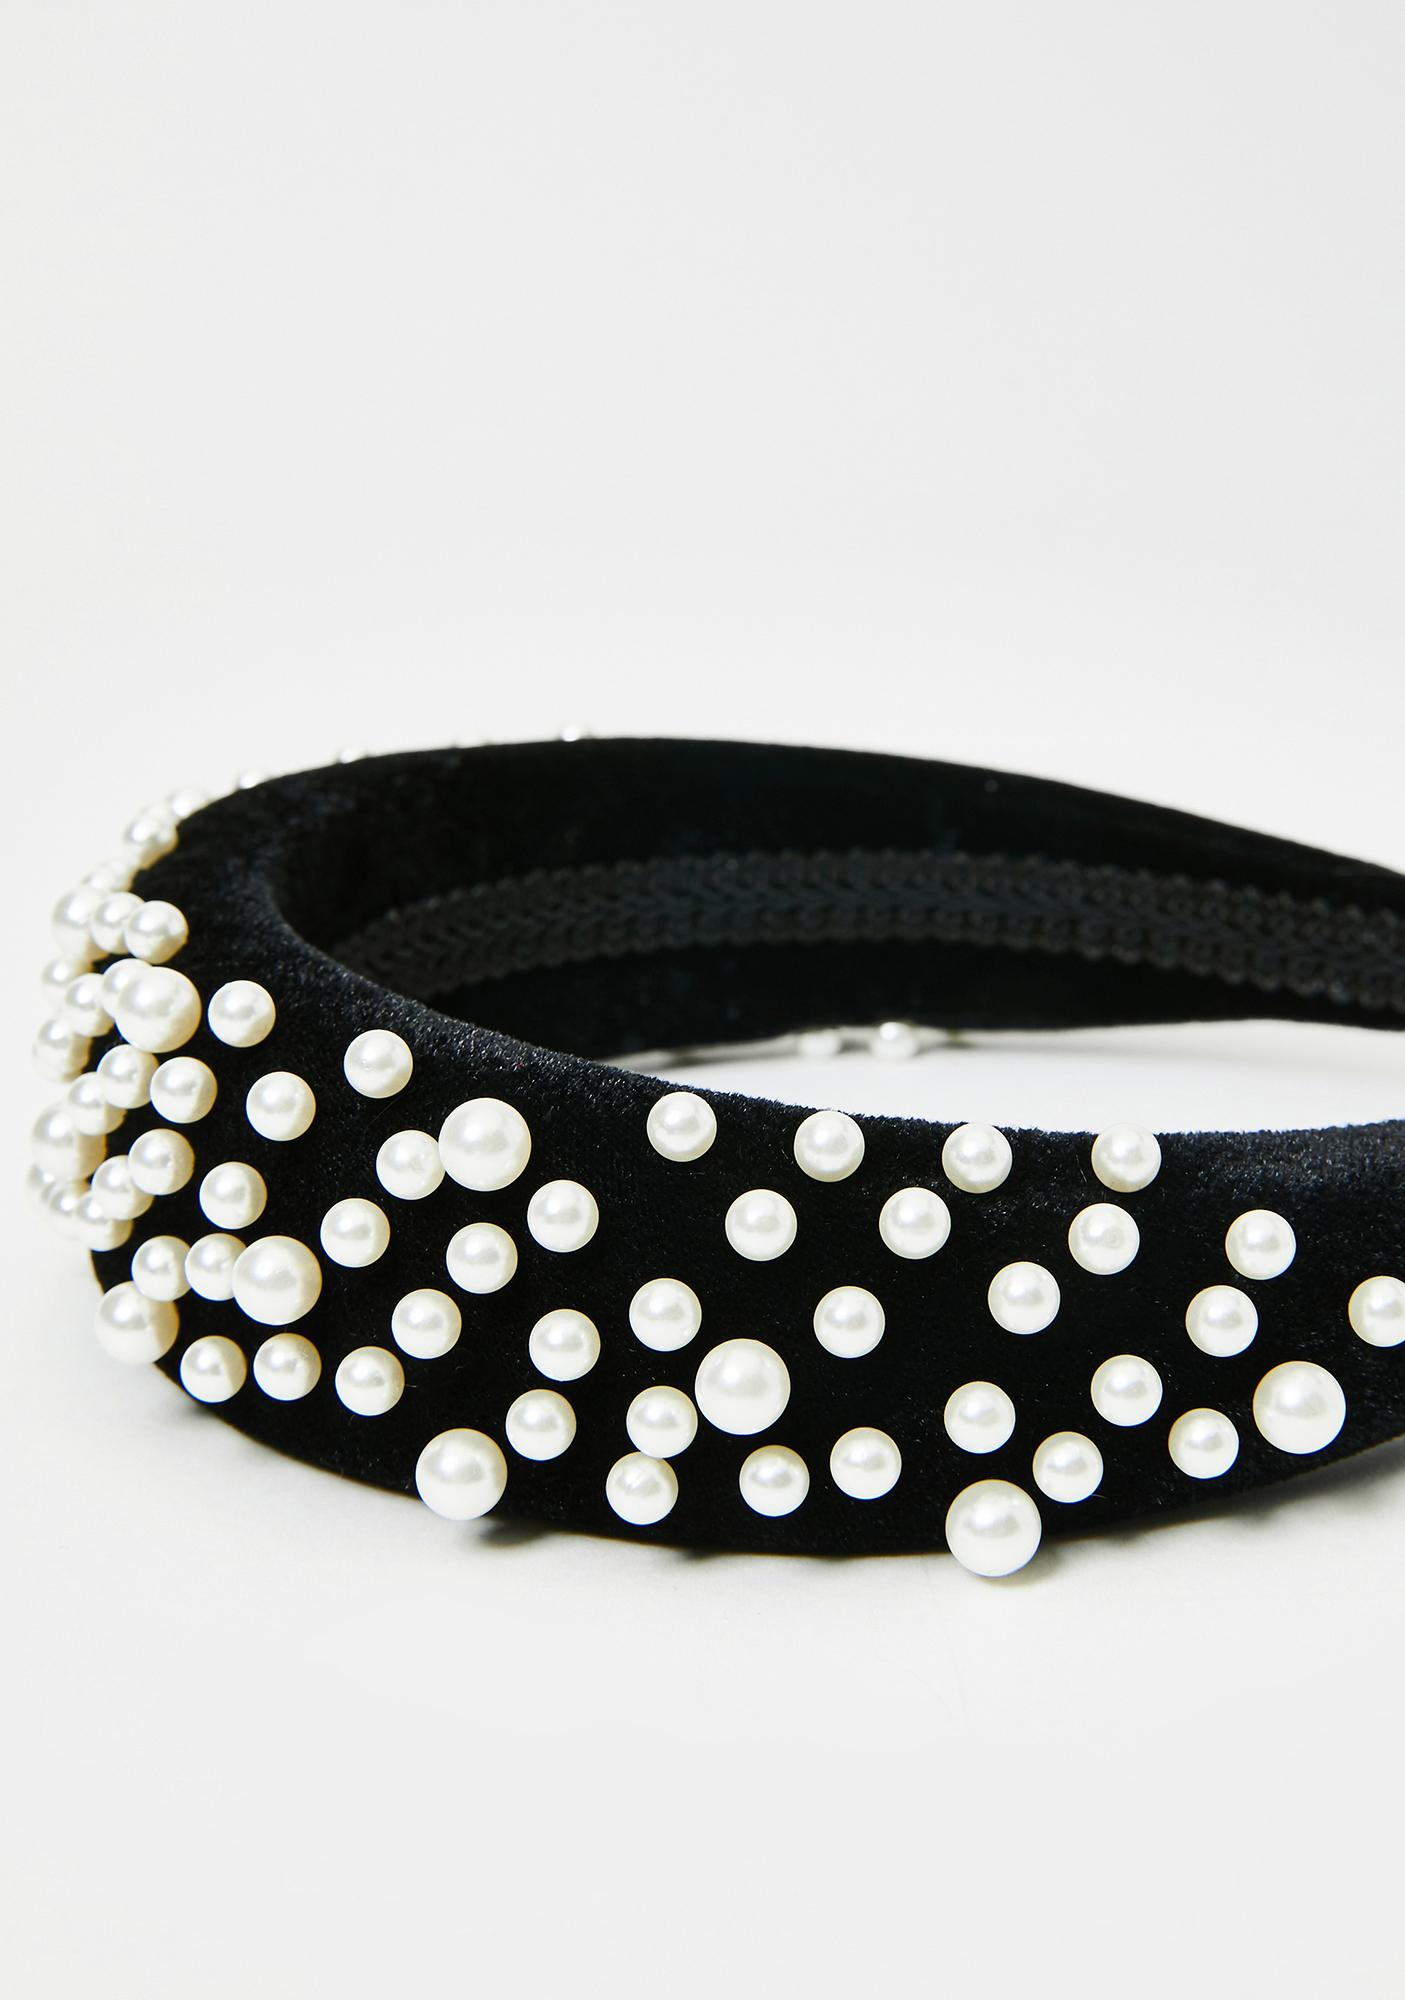 Dark Chaotic Cotillion Pearl Headband